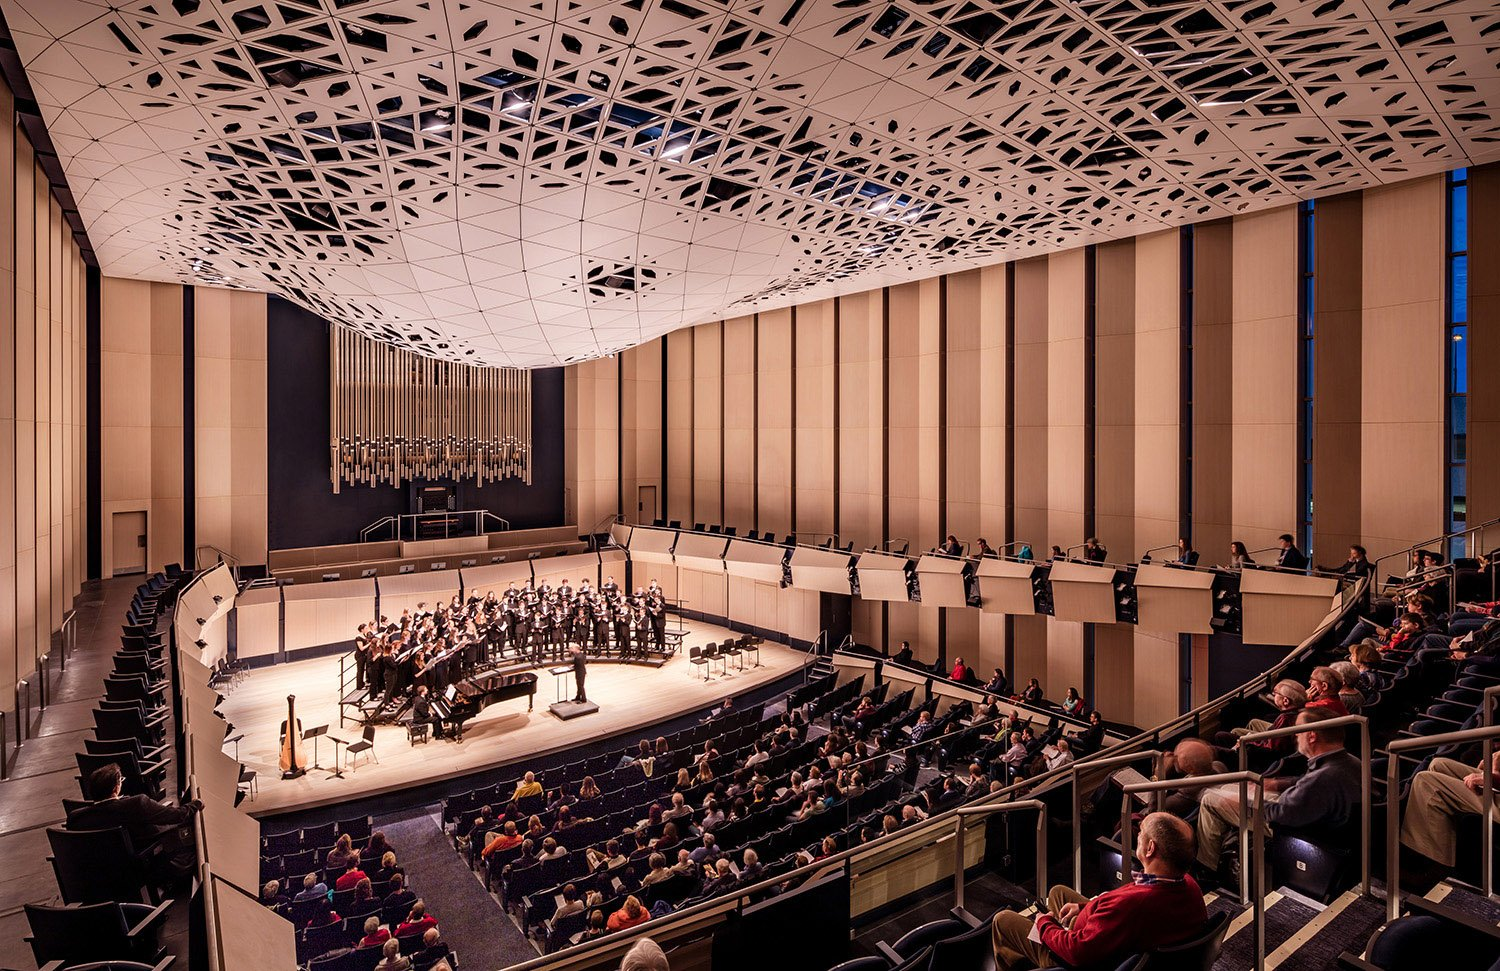 The 700-seat concert hall is a traditional shoebox-style room and frames the theatroacoustic system above. The room features variable acoustics to accommodate a variety of acoustic and amplified music. Tim Griffith}